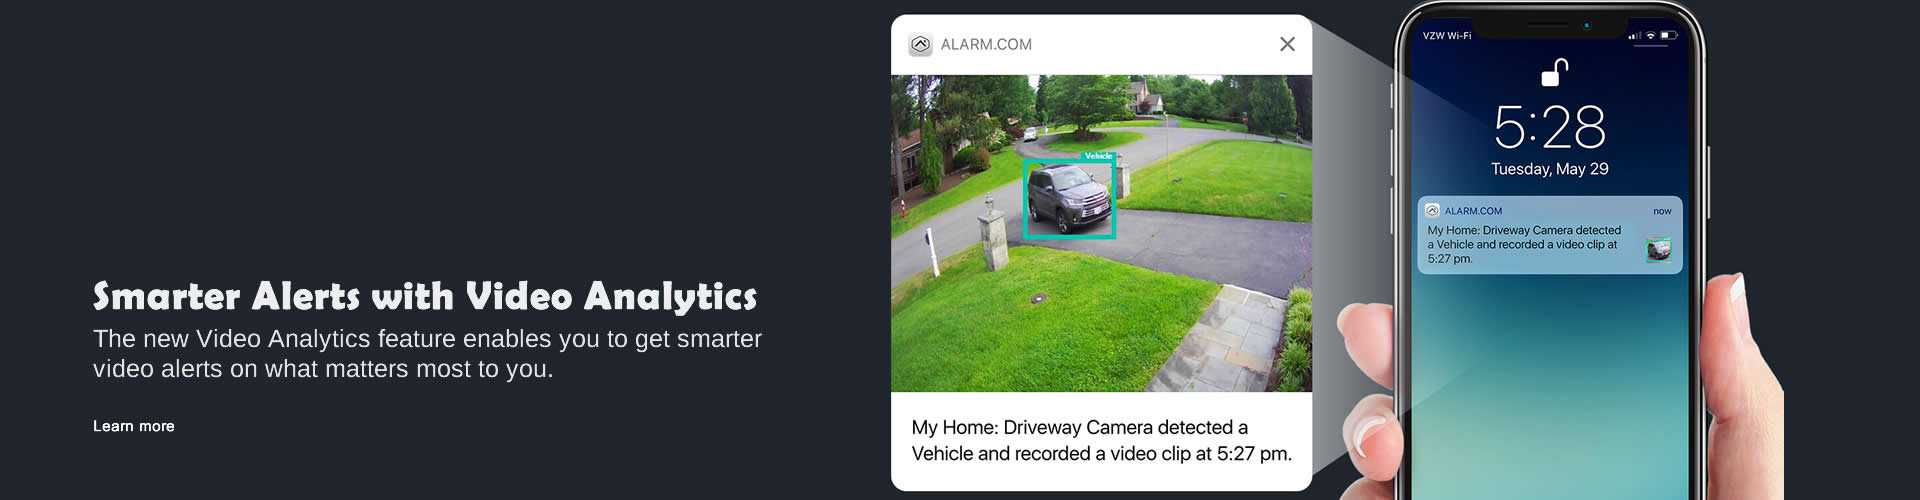 Smarter Alerts with Video Analytics